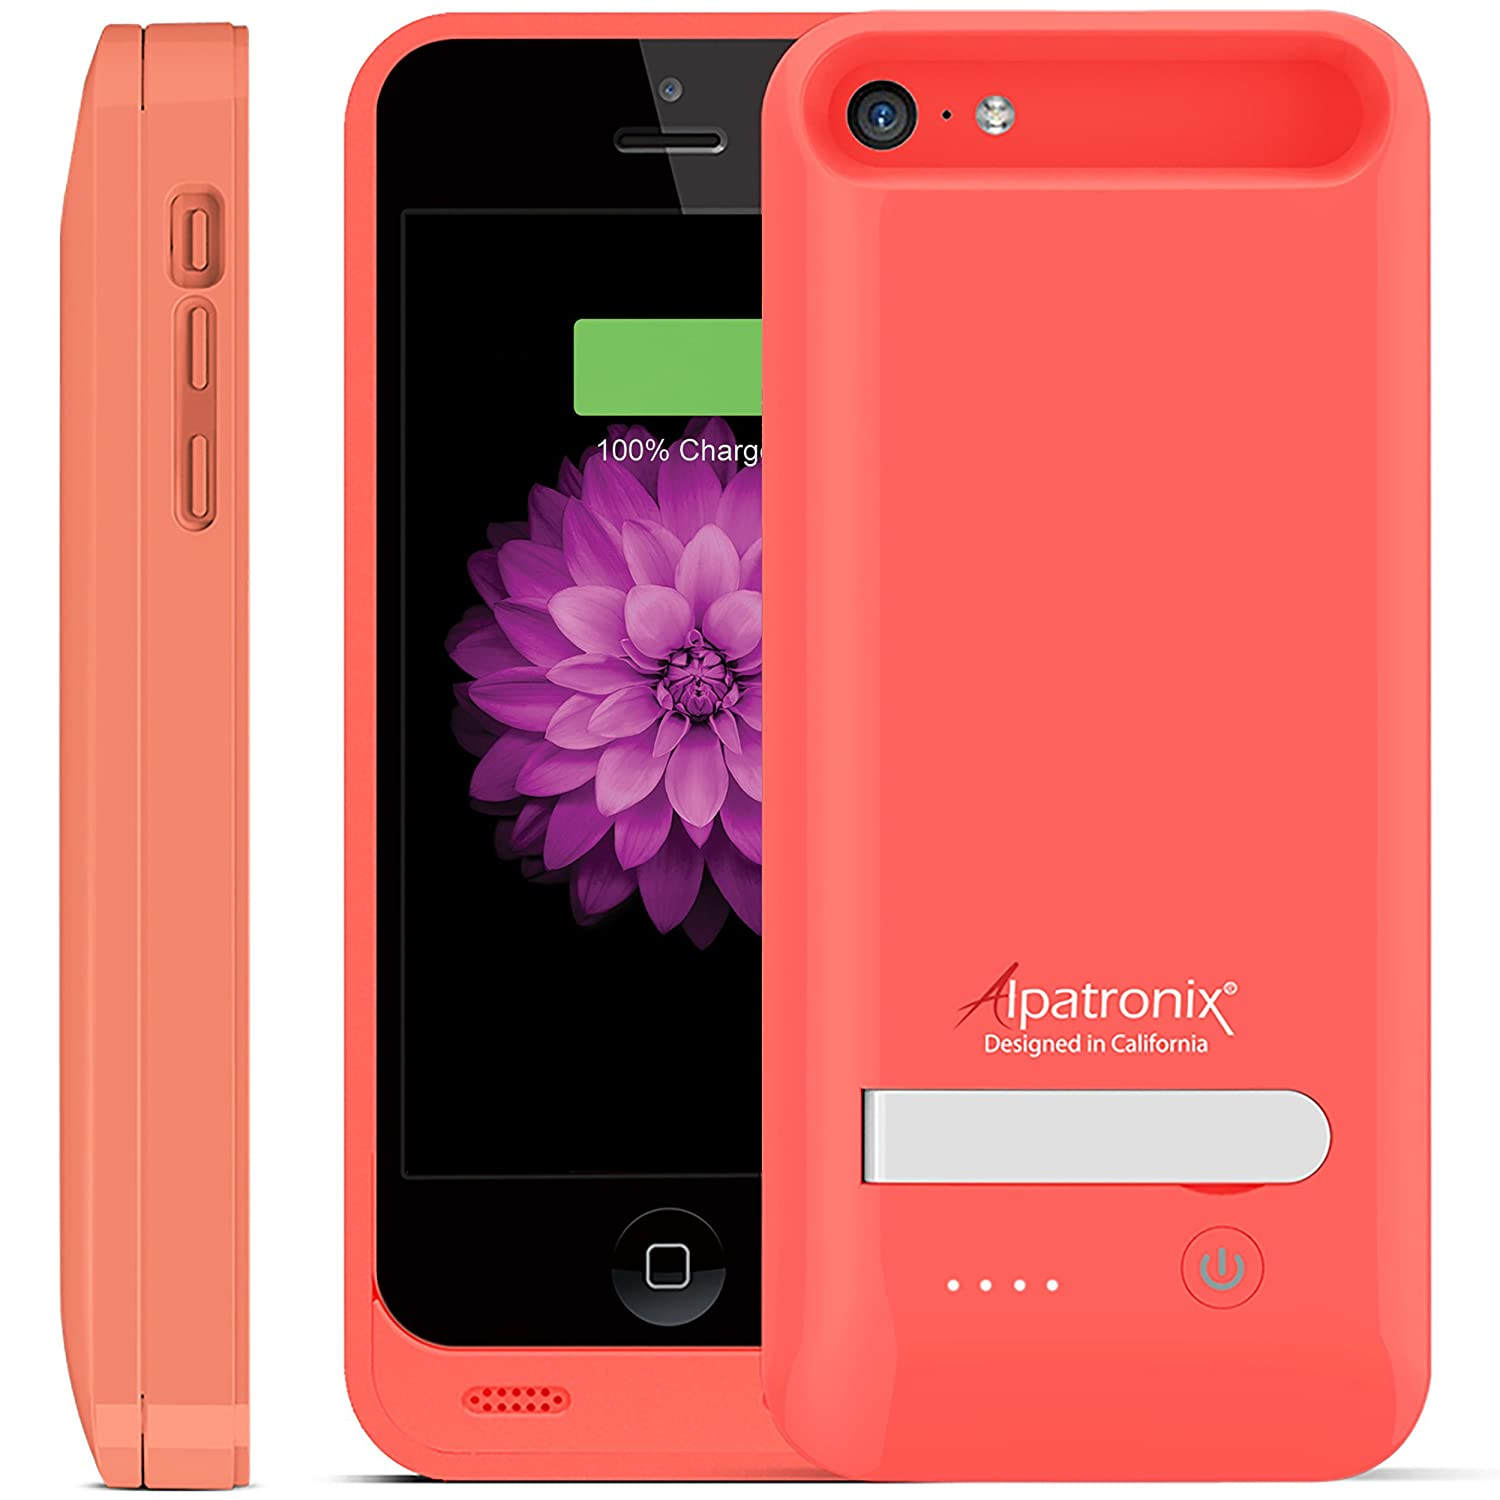 Apple Iphone 5s Charger Case Iphone 5s/5/5c Battery Case